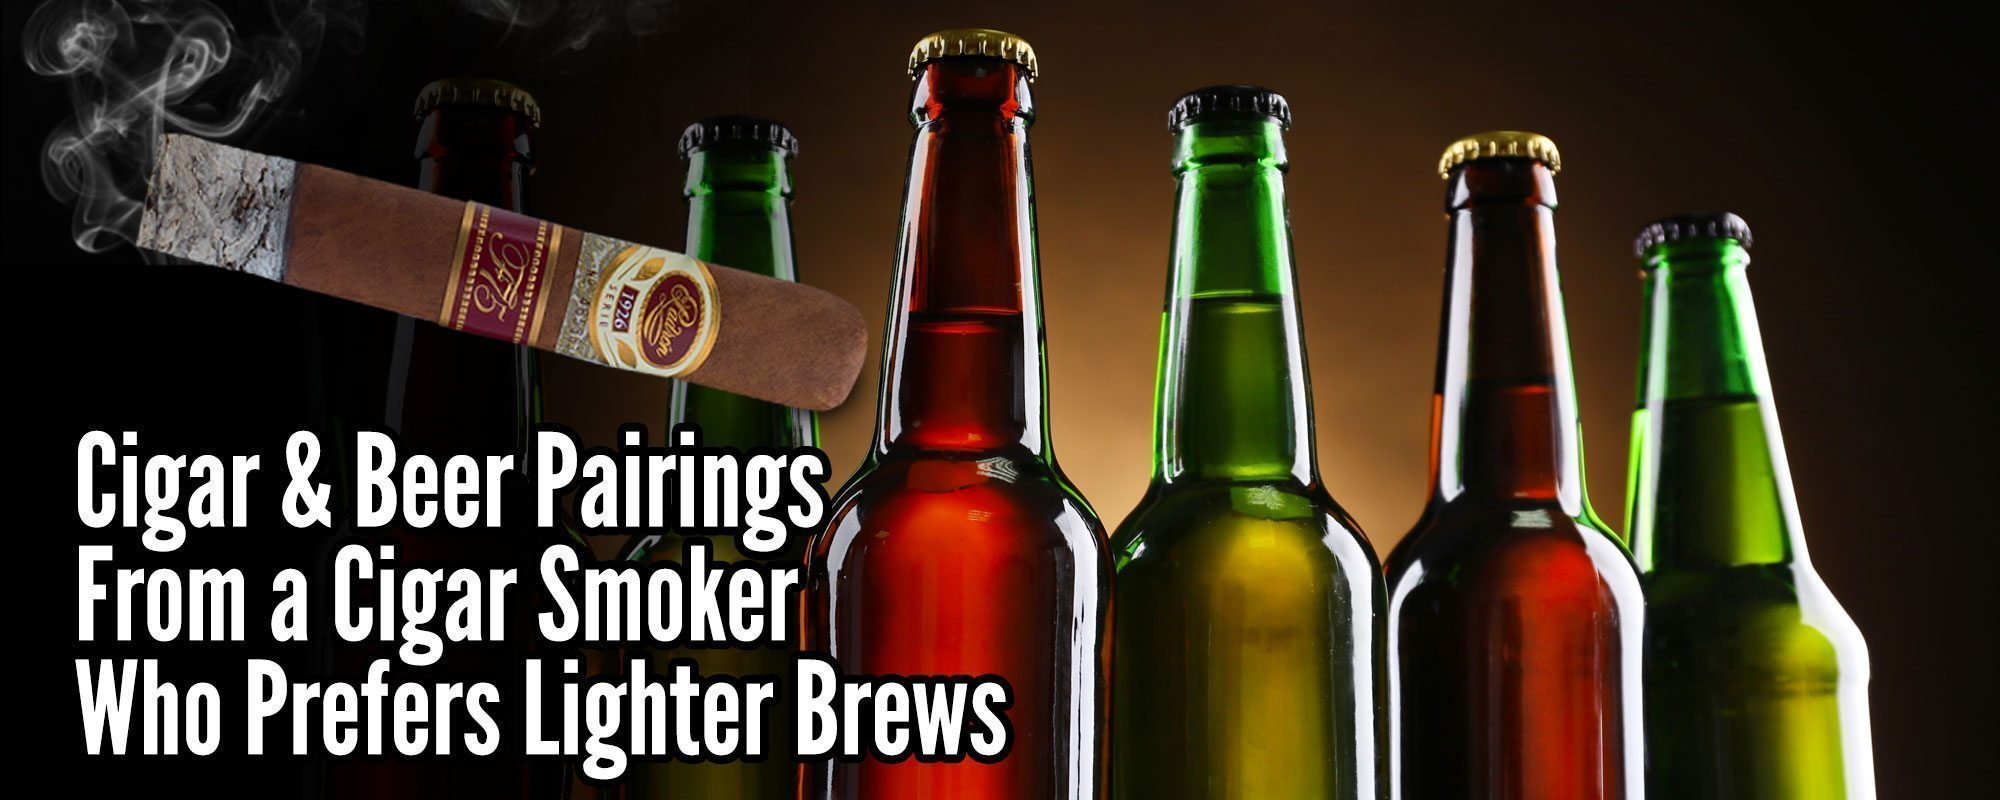 Tips & Tricks 5 Cigar & Beer Pairings from a Cigar Smoker Who Prefers Lighter Brews